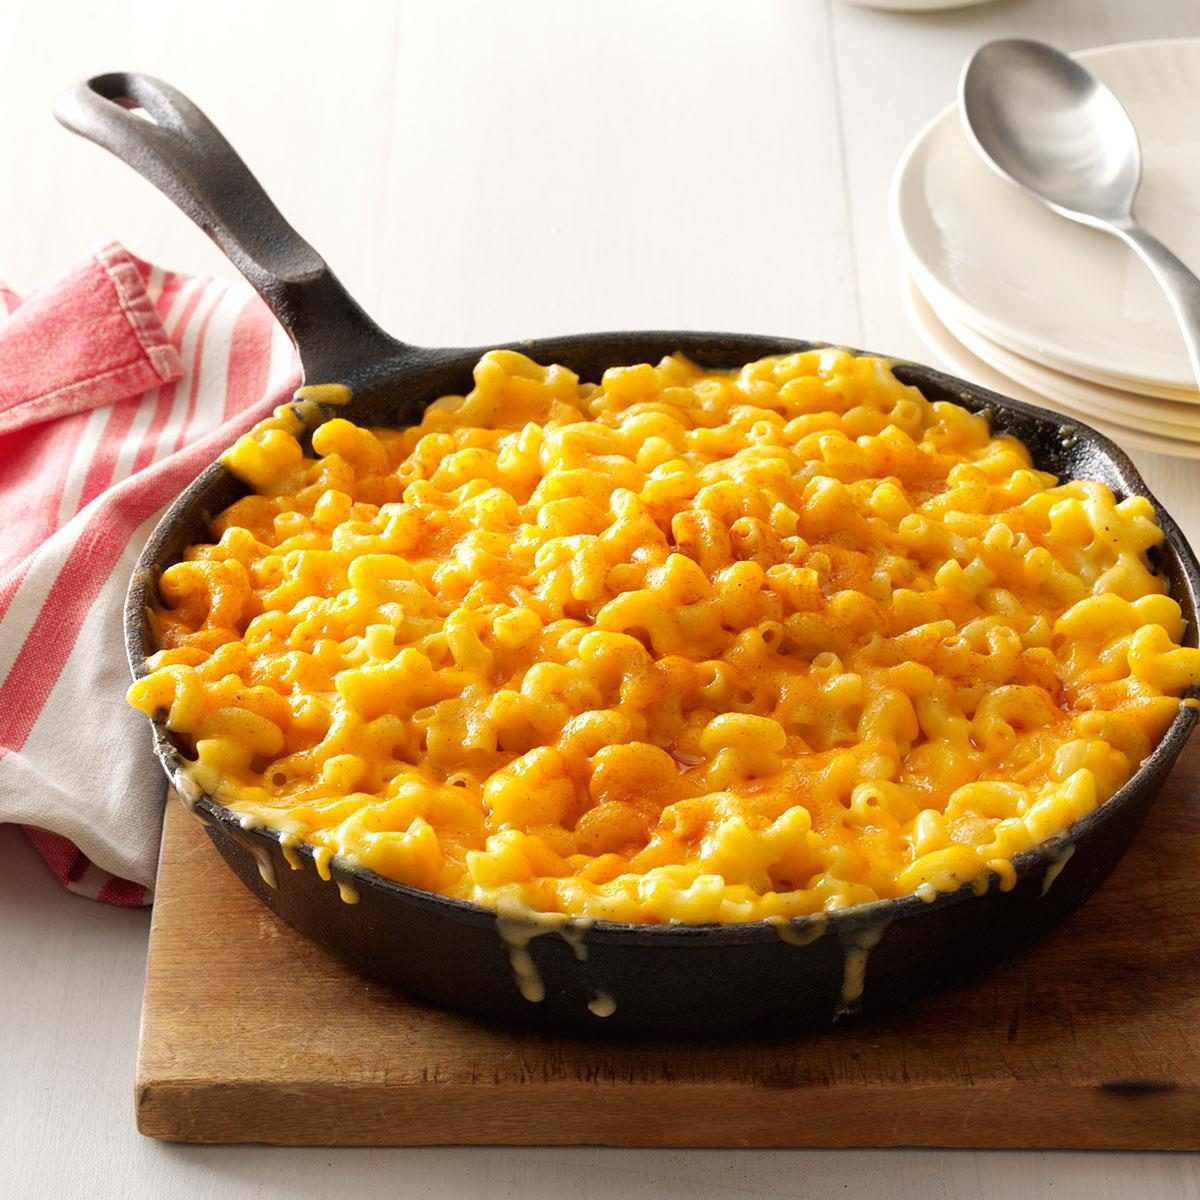 60 Quick And Easy Comfort Food Recipes: Homey Mac & Cheese Recipe